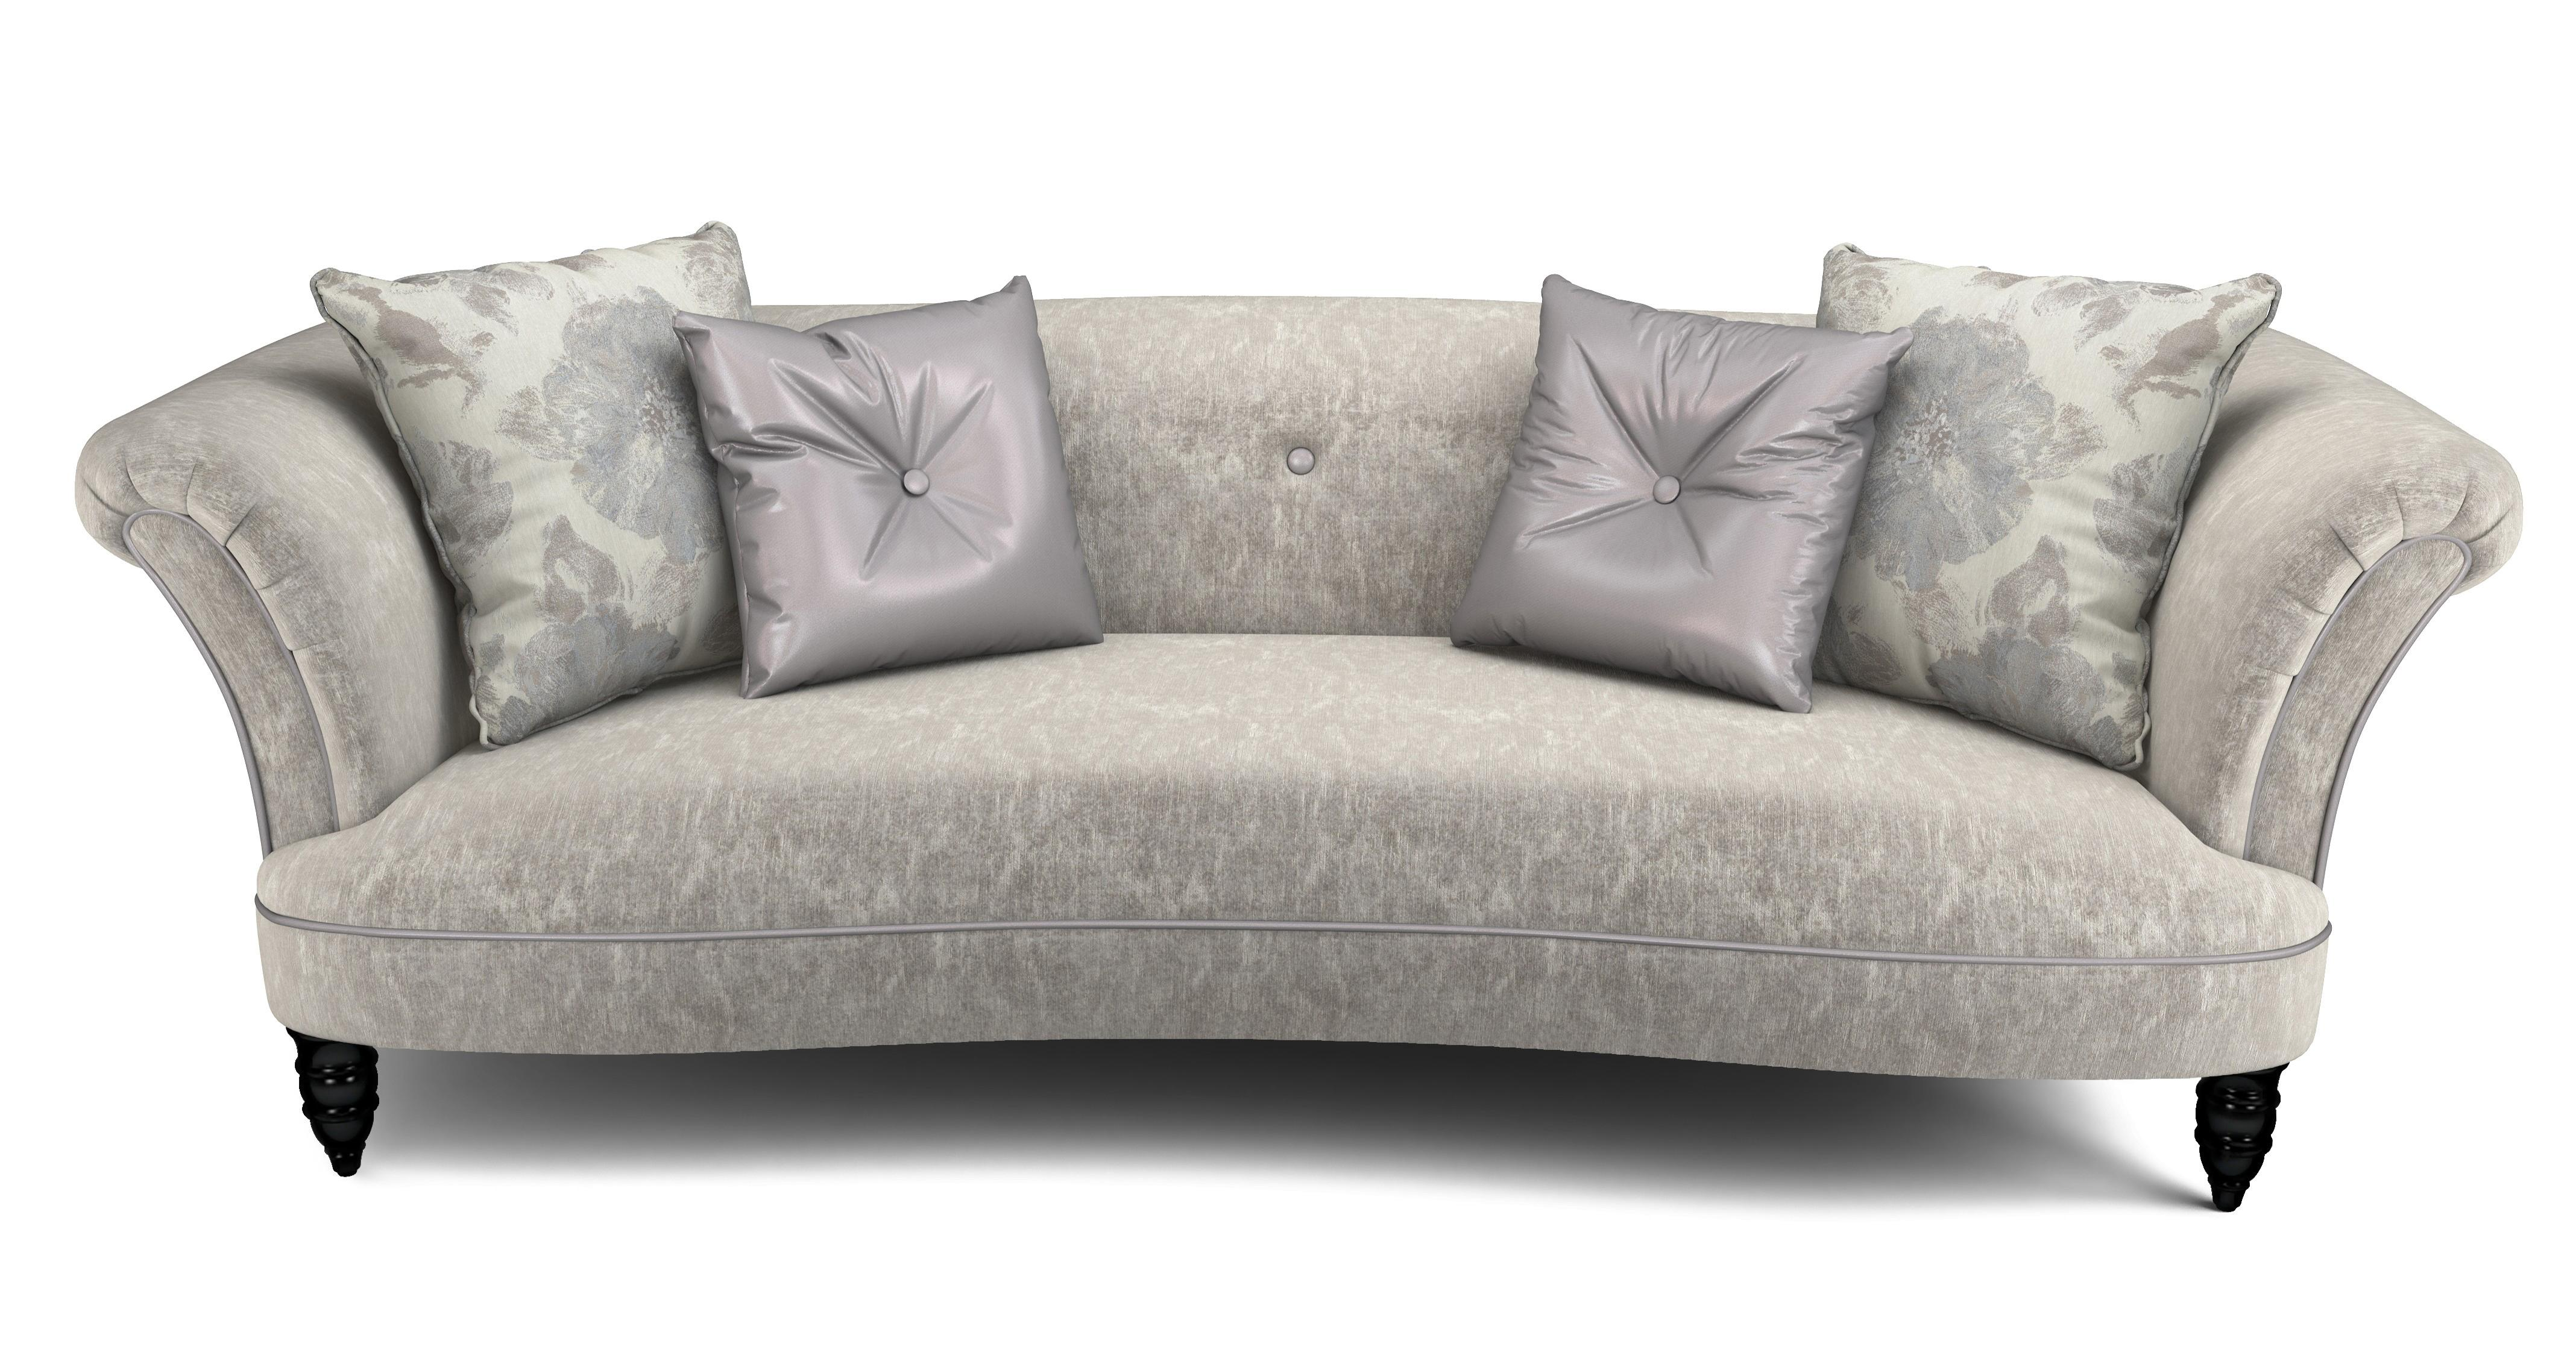 oval sofa high back 2 seater sofas dfs concerto fabric 4 cuddler and